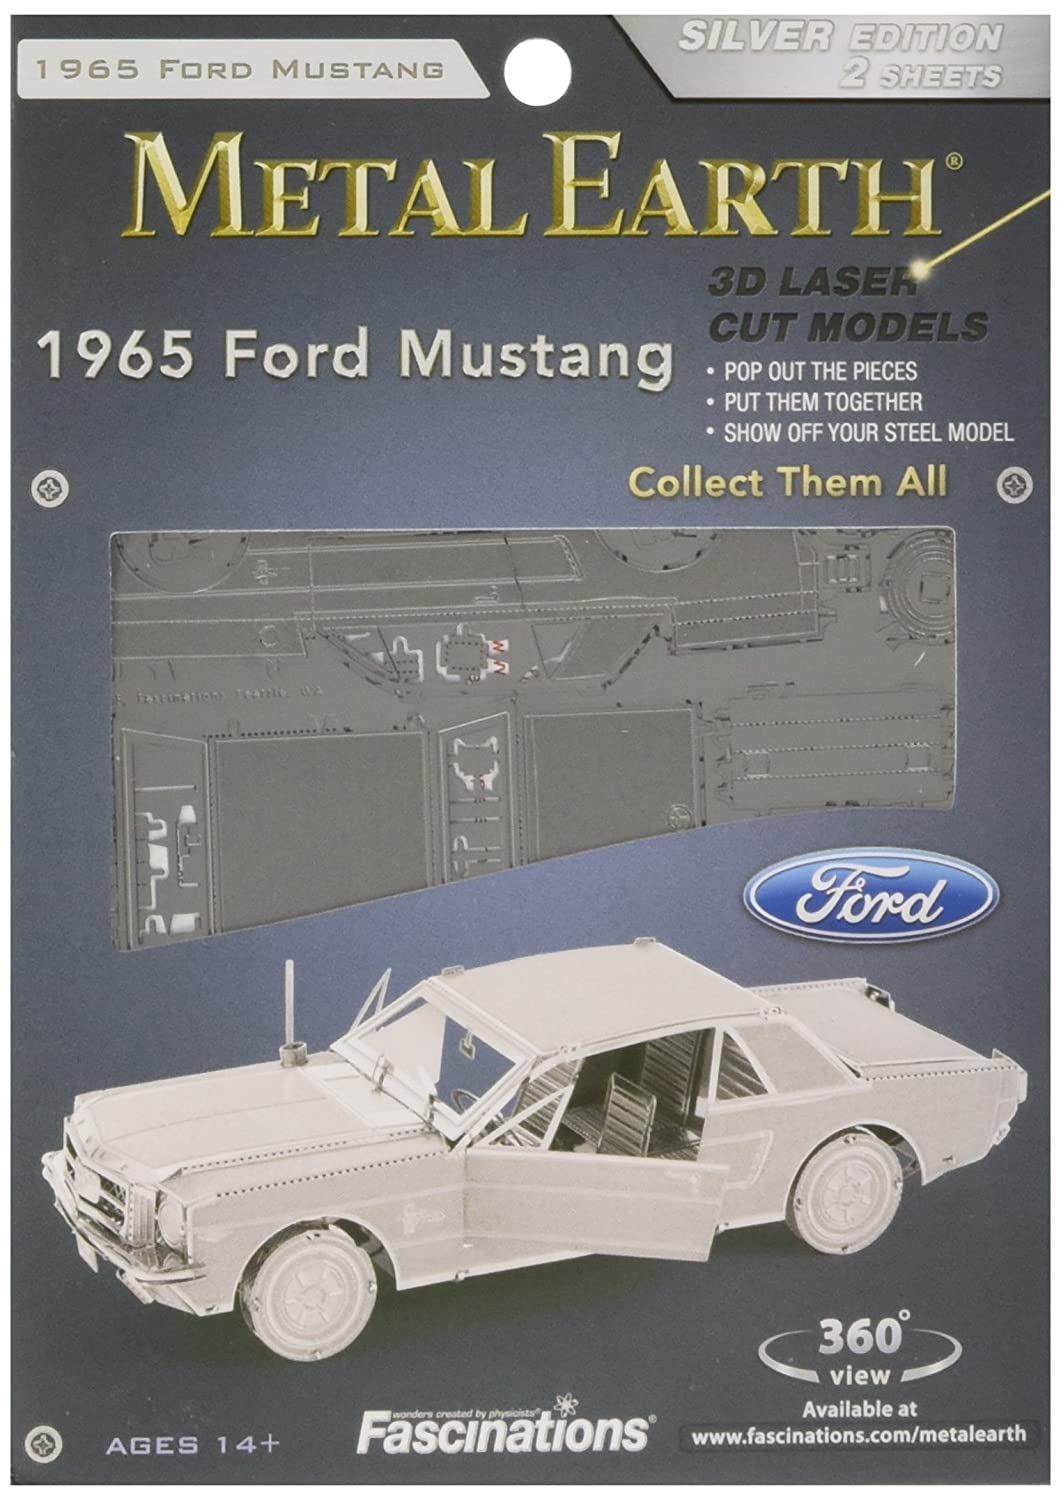 Fascinations metal earth 1965 ford mustang 3d metal model kit cars amazon canada